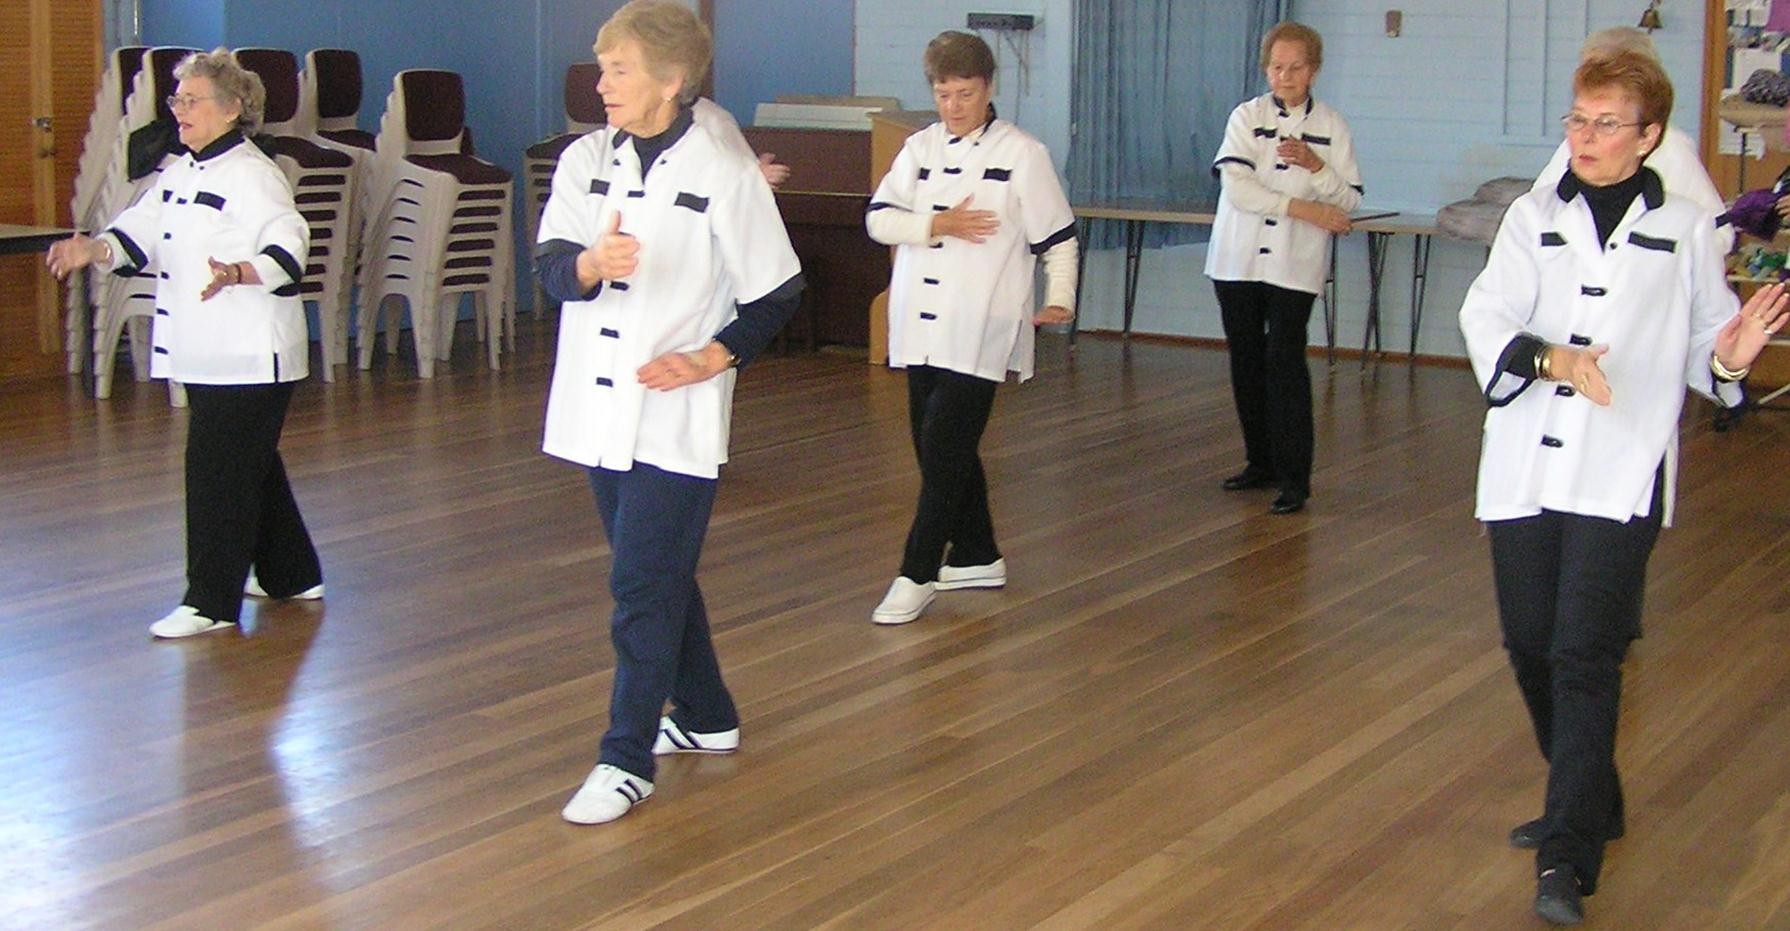 Members of the Canberra Seniors Centre taking part in Tai Chi.